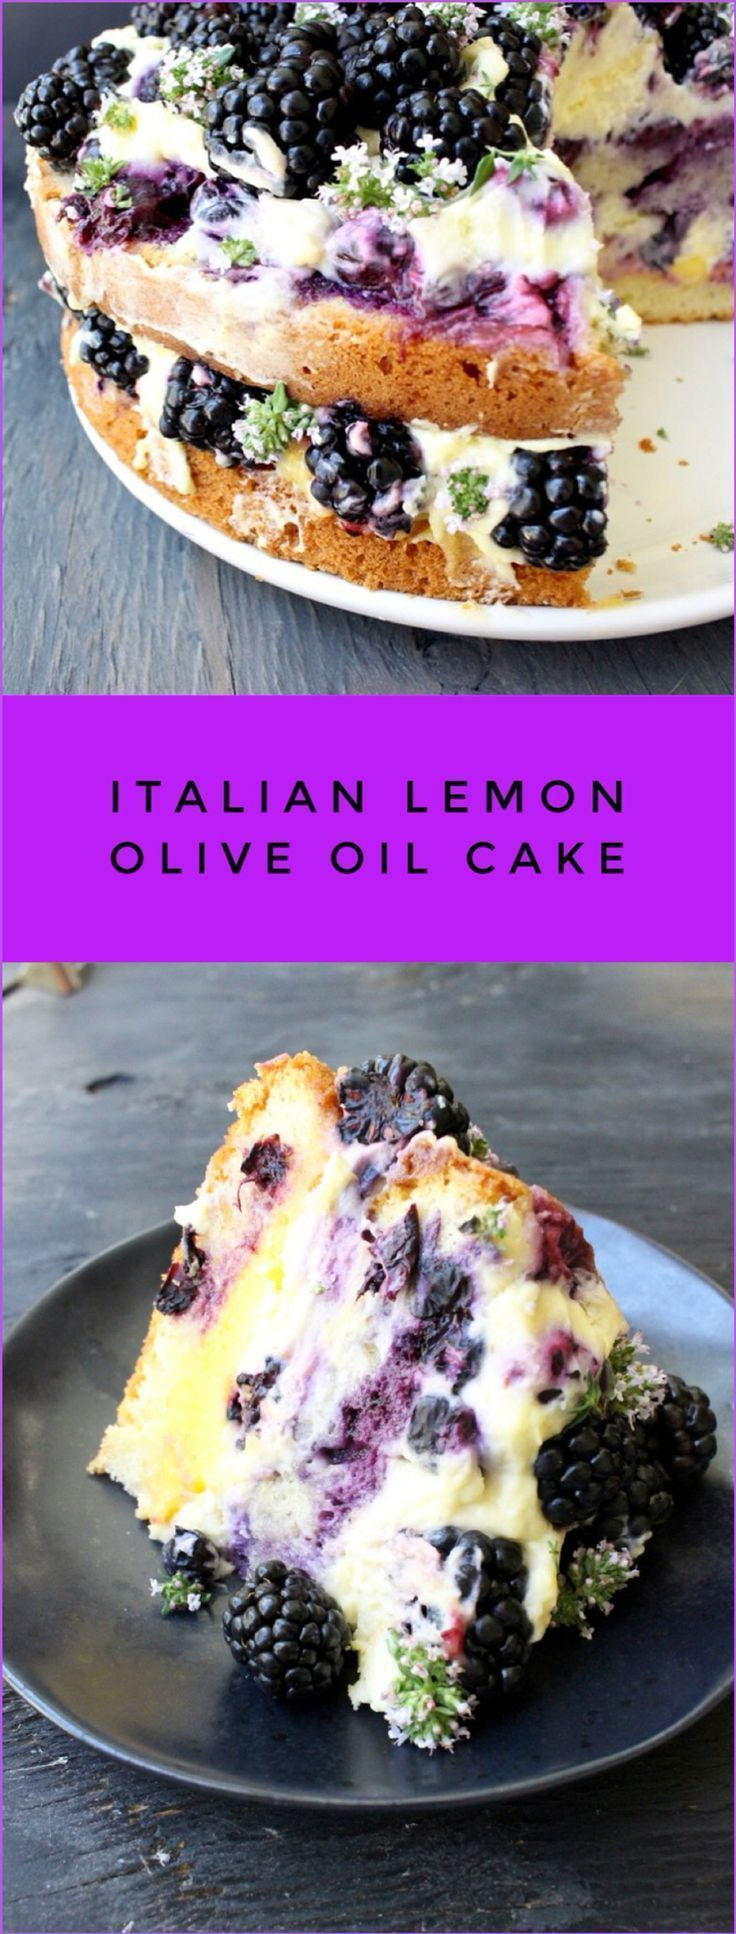 Photo of Italian Lemon Olive Oil Cake Recipe with Berries, Mascarpone and Lemon Curd – Ciao Florentina